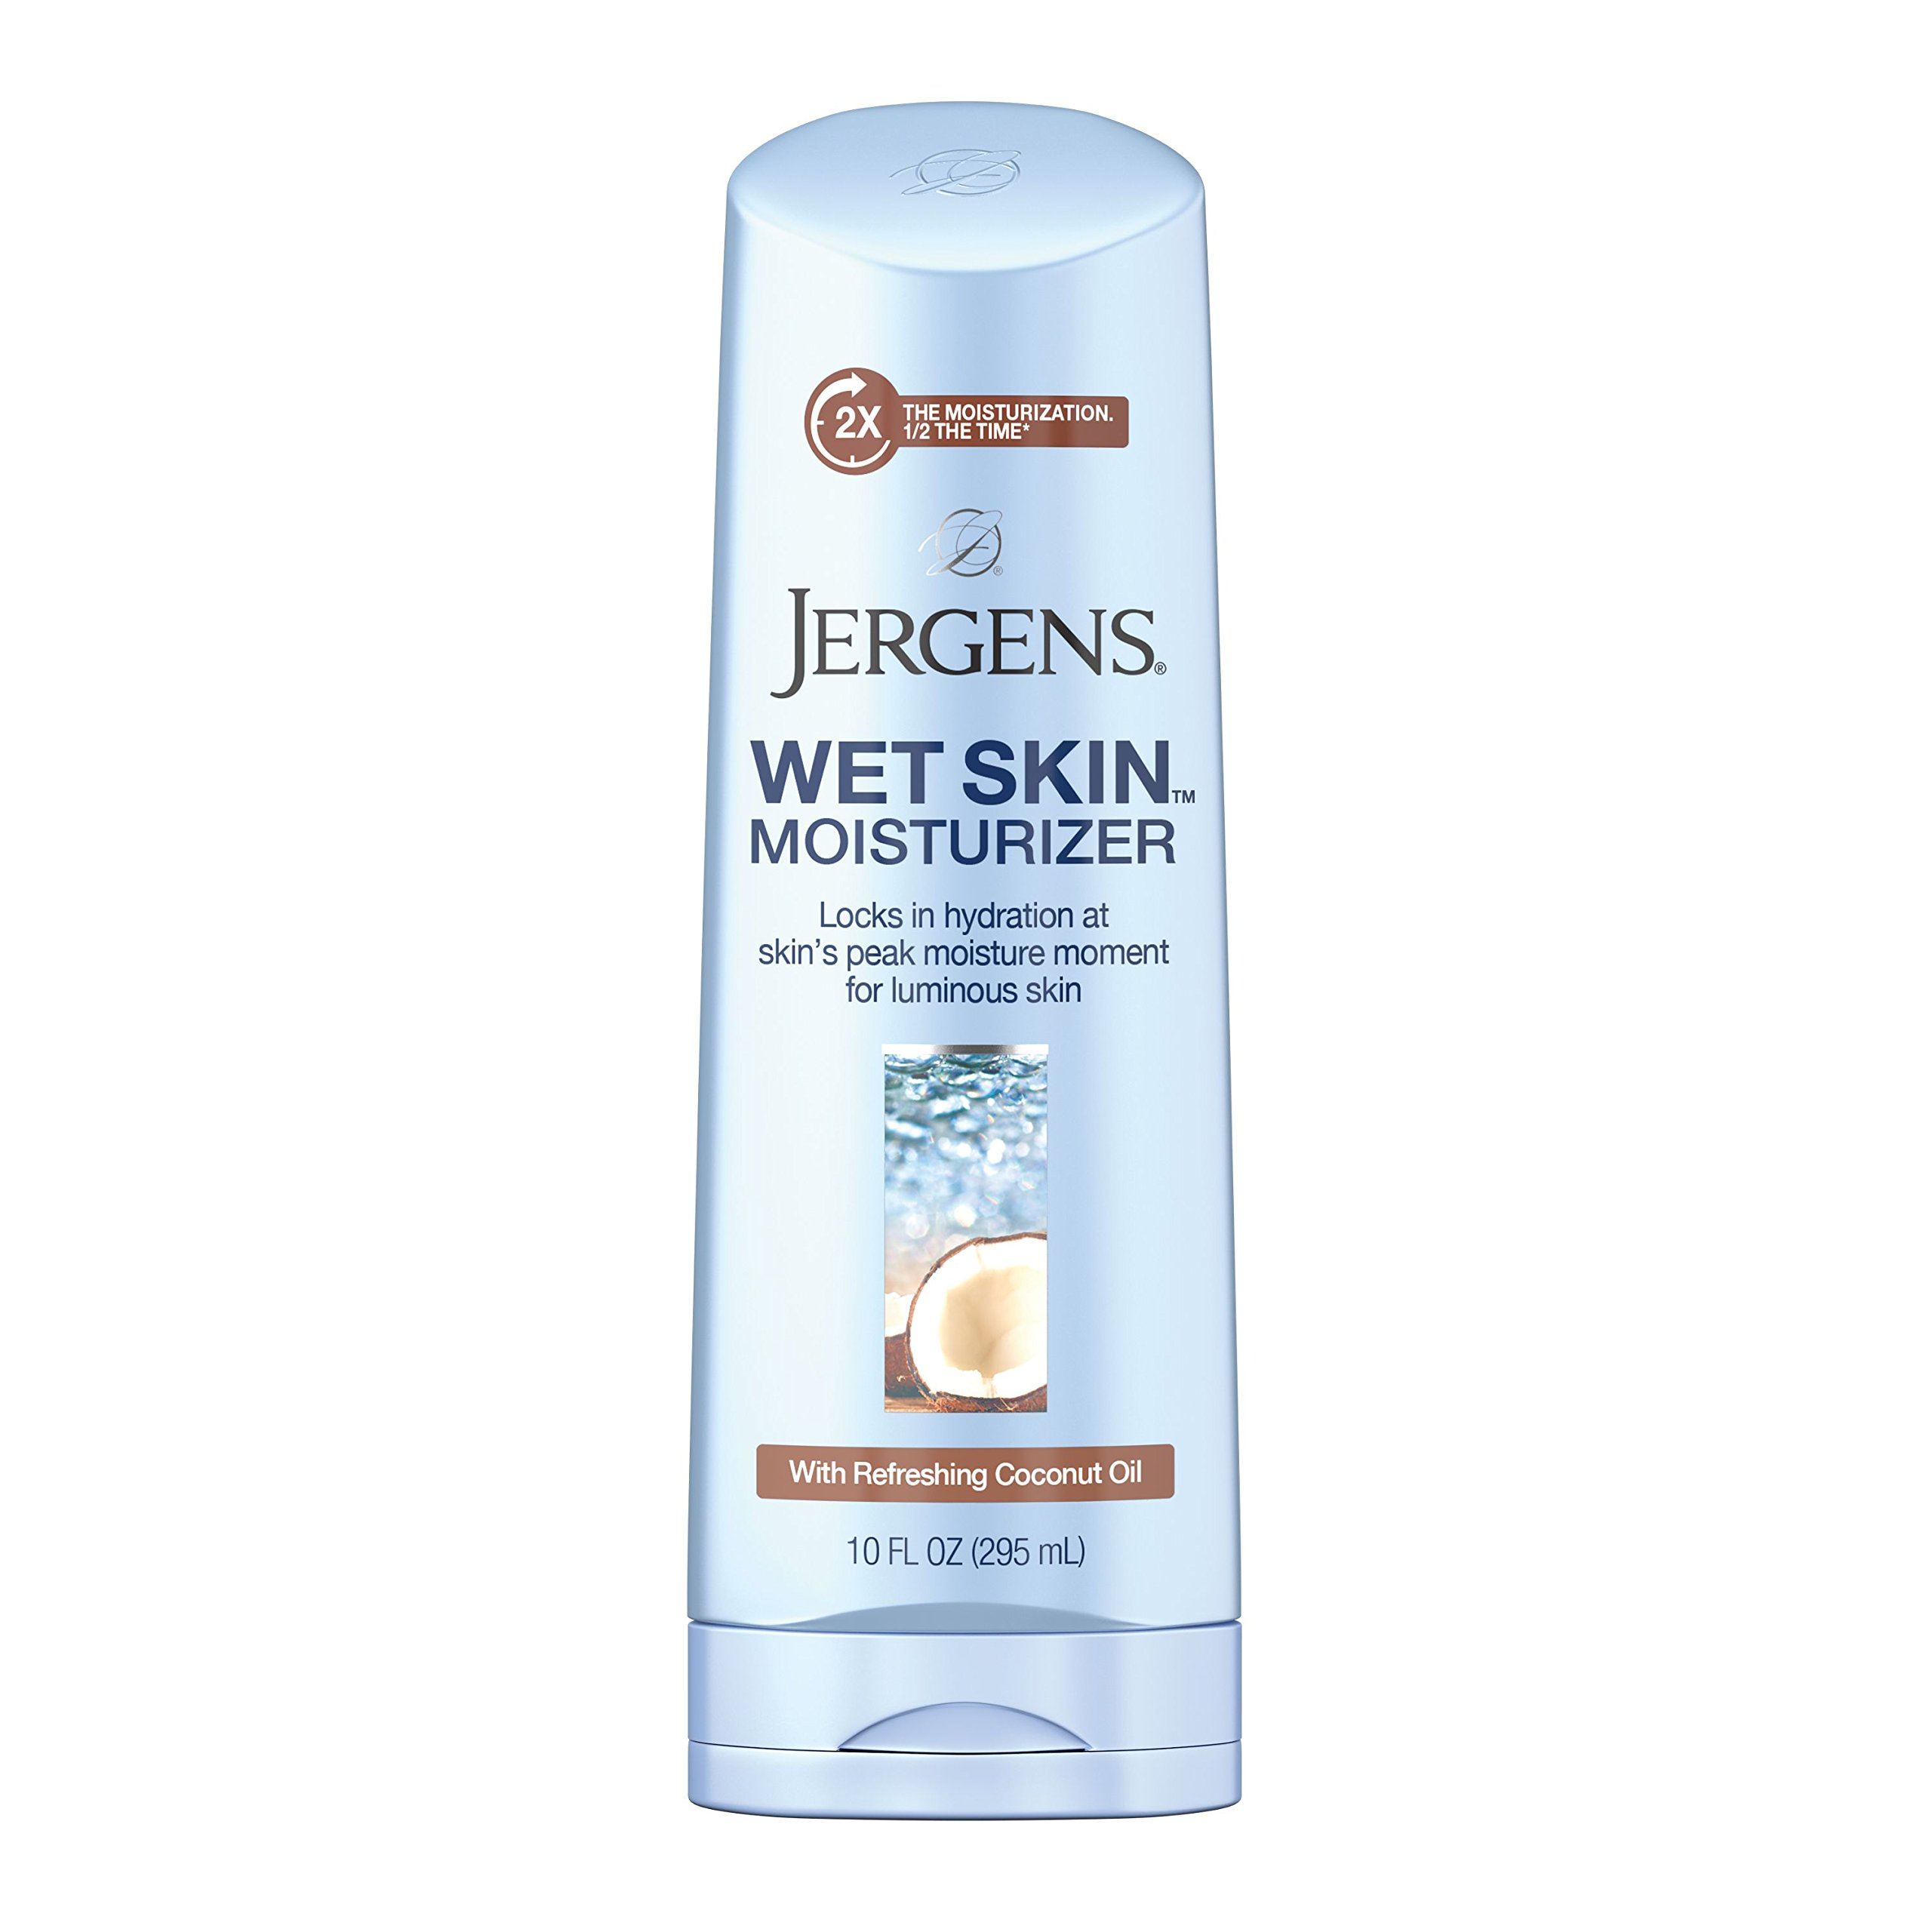 Jergens Wet Skin Body Moisturizer with Refreshing Coconut Oil, 10 Ounces